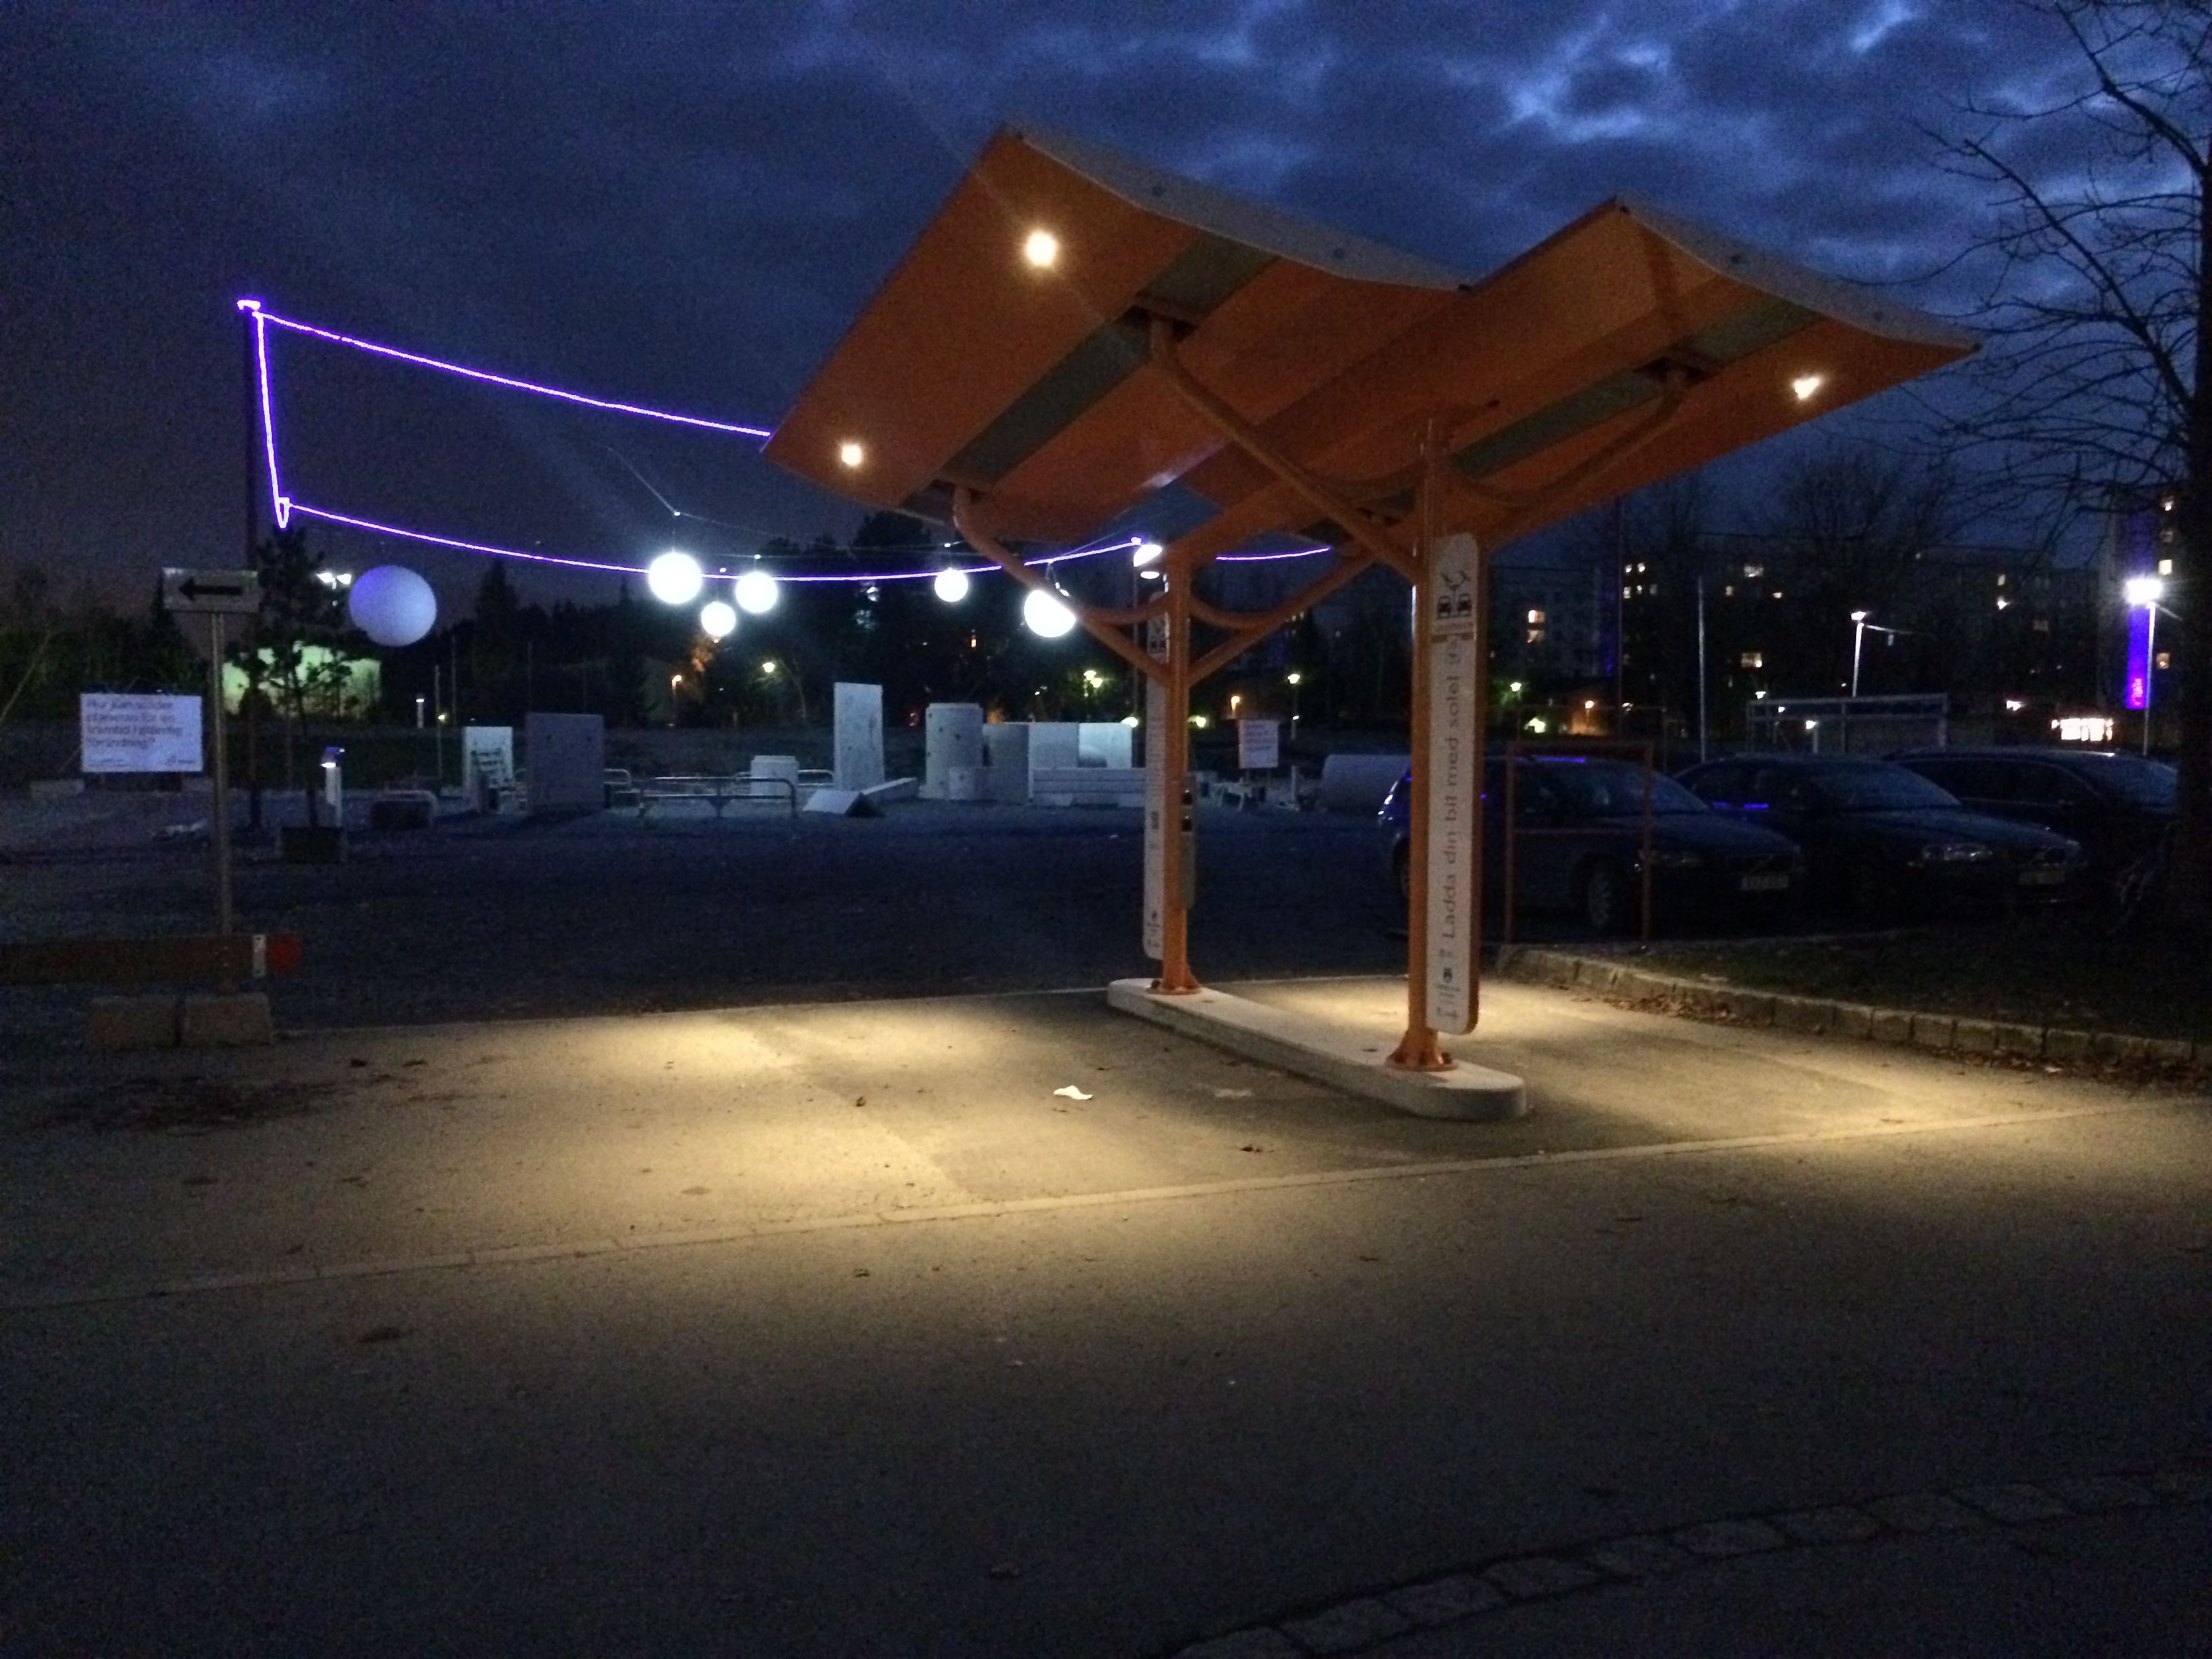 Solar charging during night - SunBank! #EV #solarcharger #electricvehicle